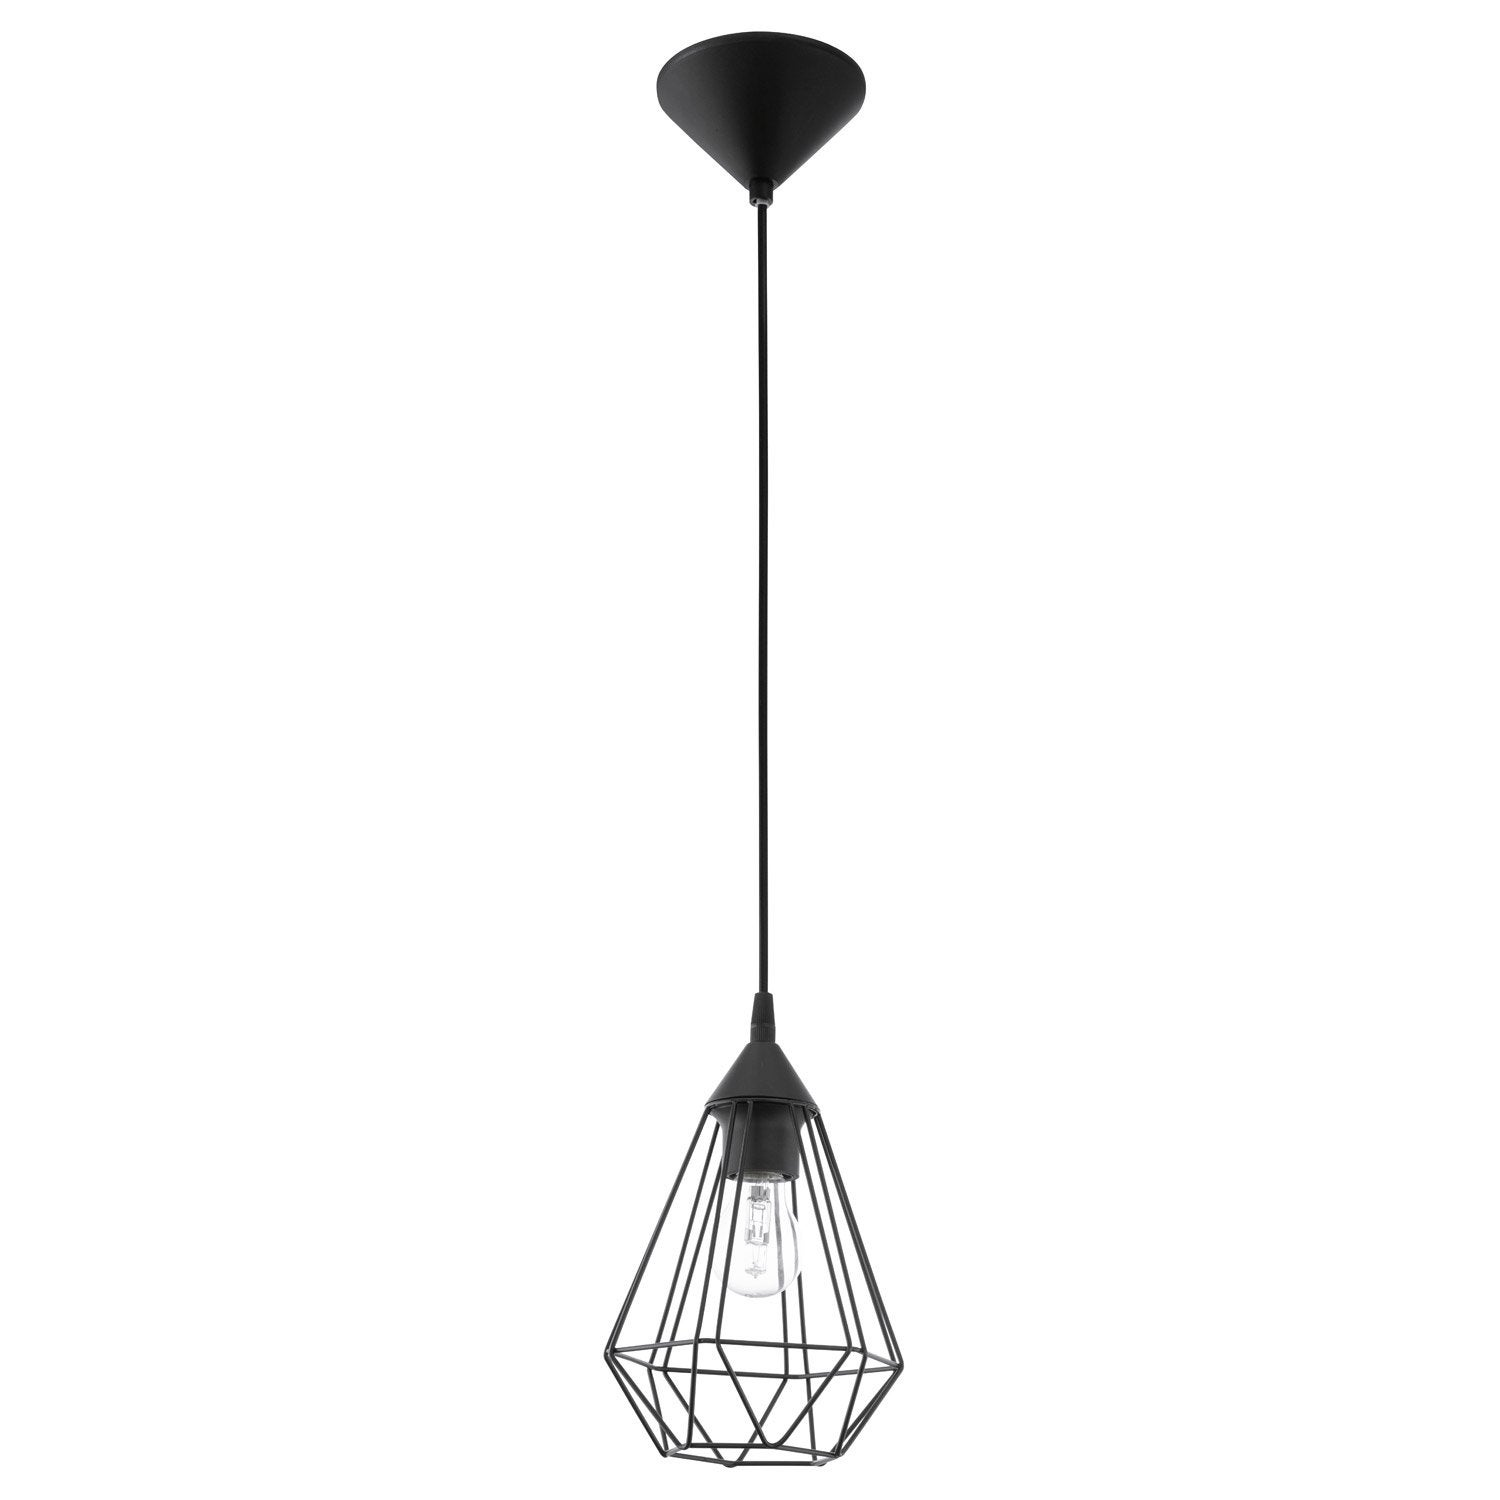 Merveilleux Suspension Industrielle Leroy Merlin #2: Suspension, E27 Style Industriel Tarbes Métal Noir 1 X 60 W EGLO ...